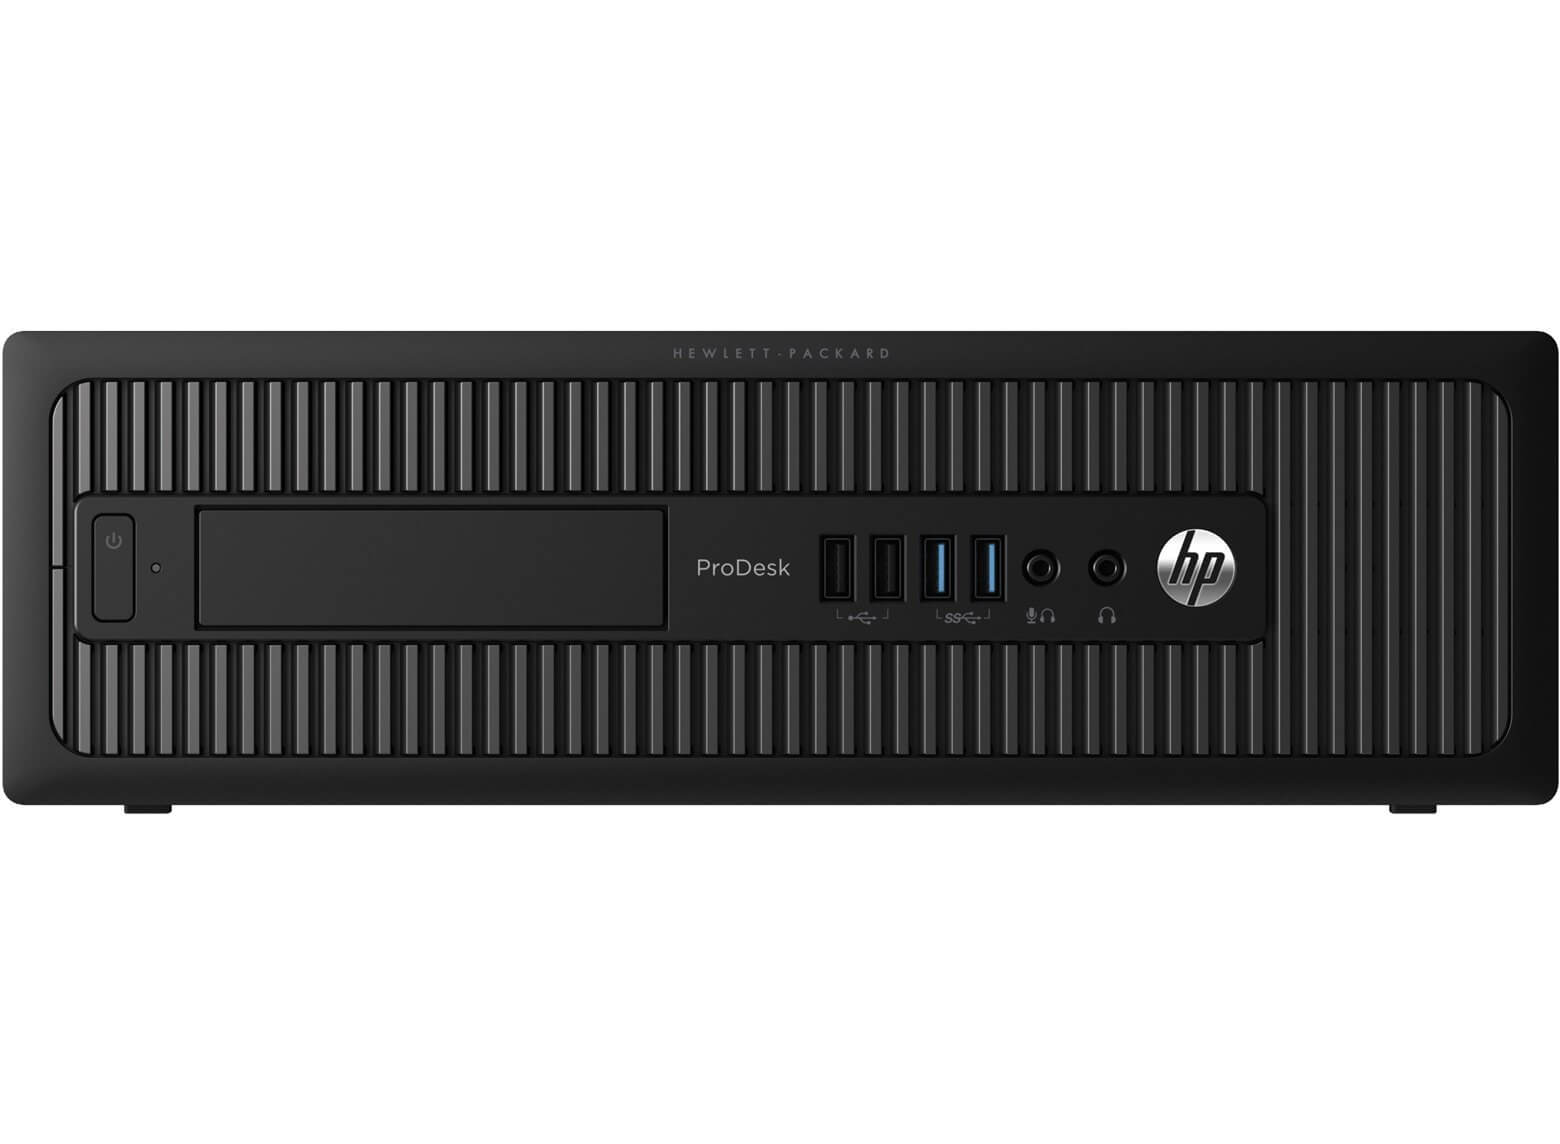 HP PRODESK 600 G1 SFF I3-4130 3.4 / 8192 MB DDR3 / 500 GB / DVD-RW / WINDOWS 10 PRO